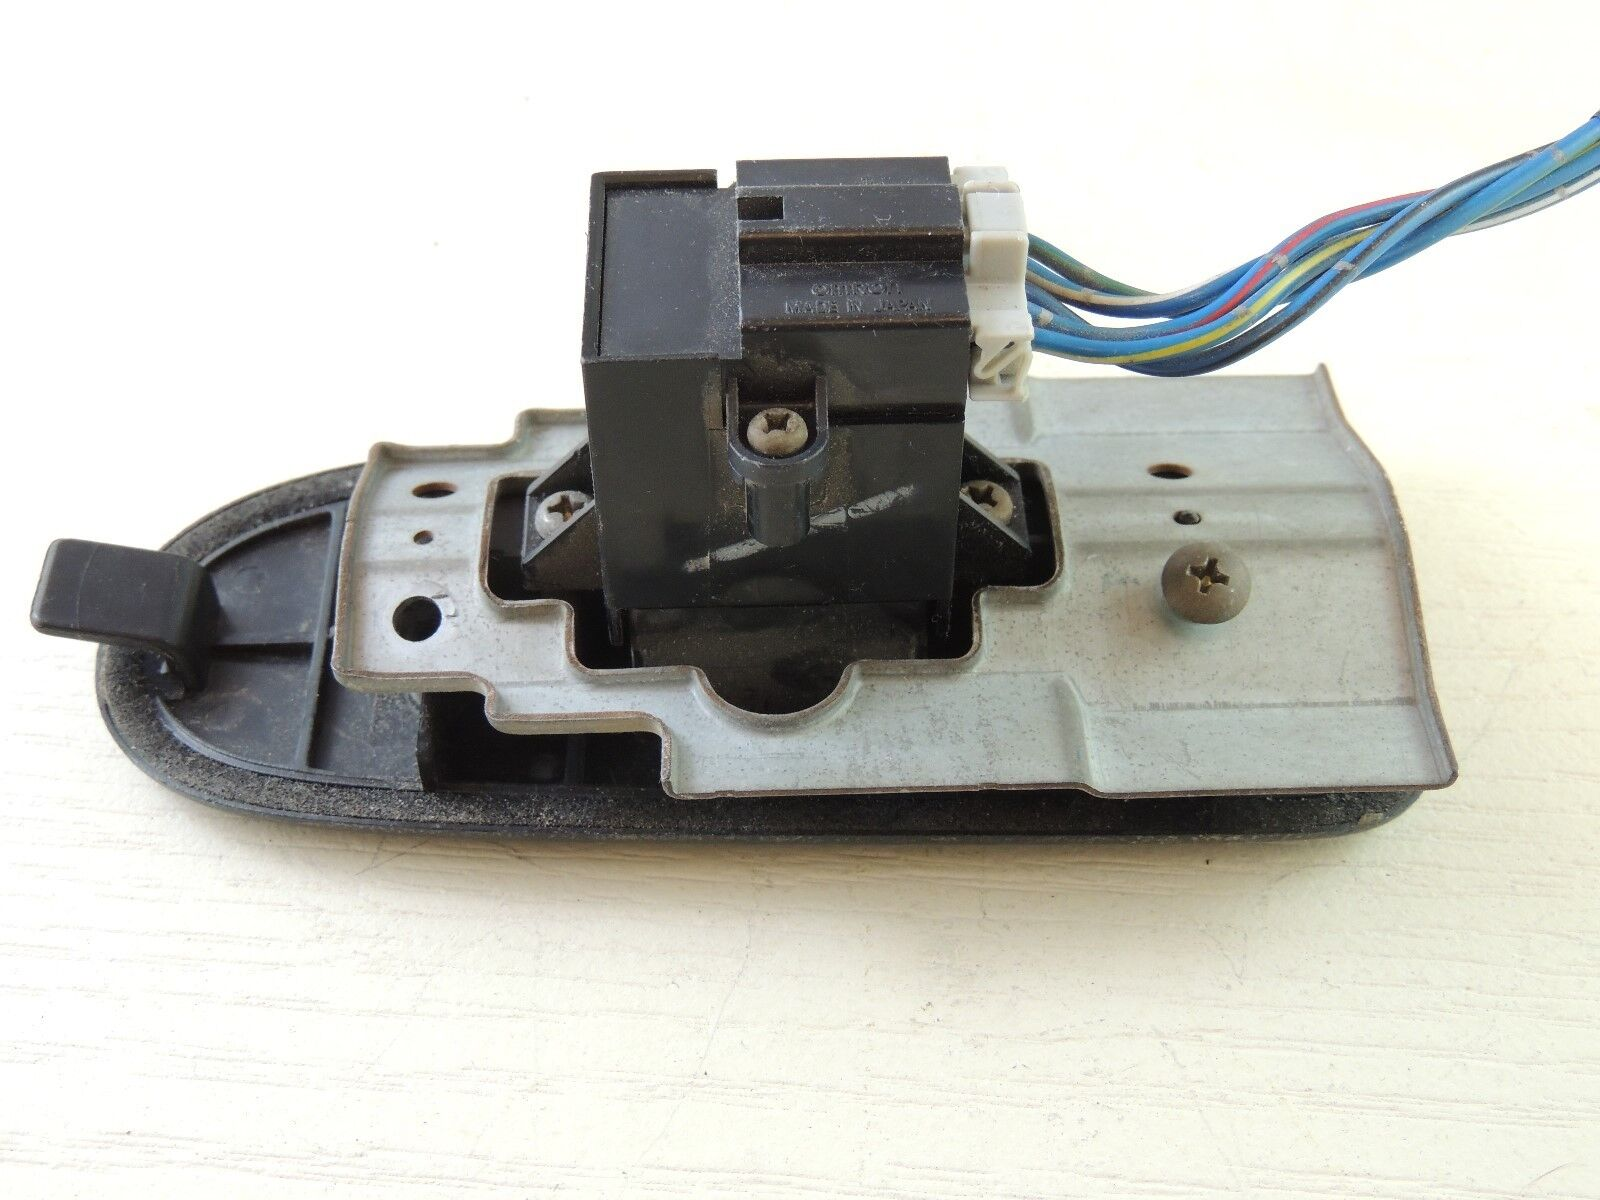 Details about  /97-99 ACURA CL LH POWER WINDOW MASTER SWITCH TRIM BEZEL BLACK panel cover